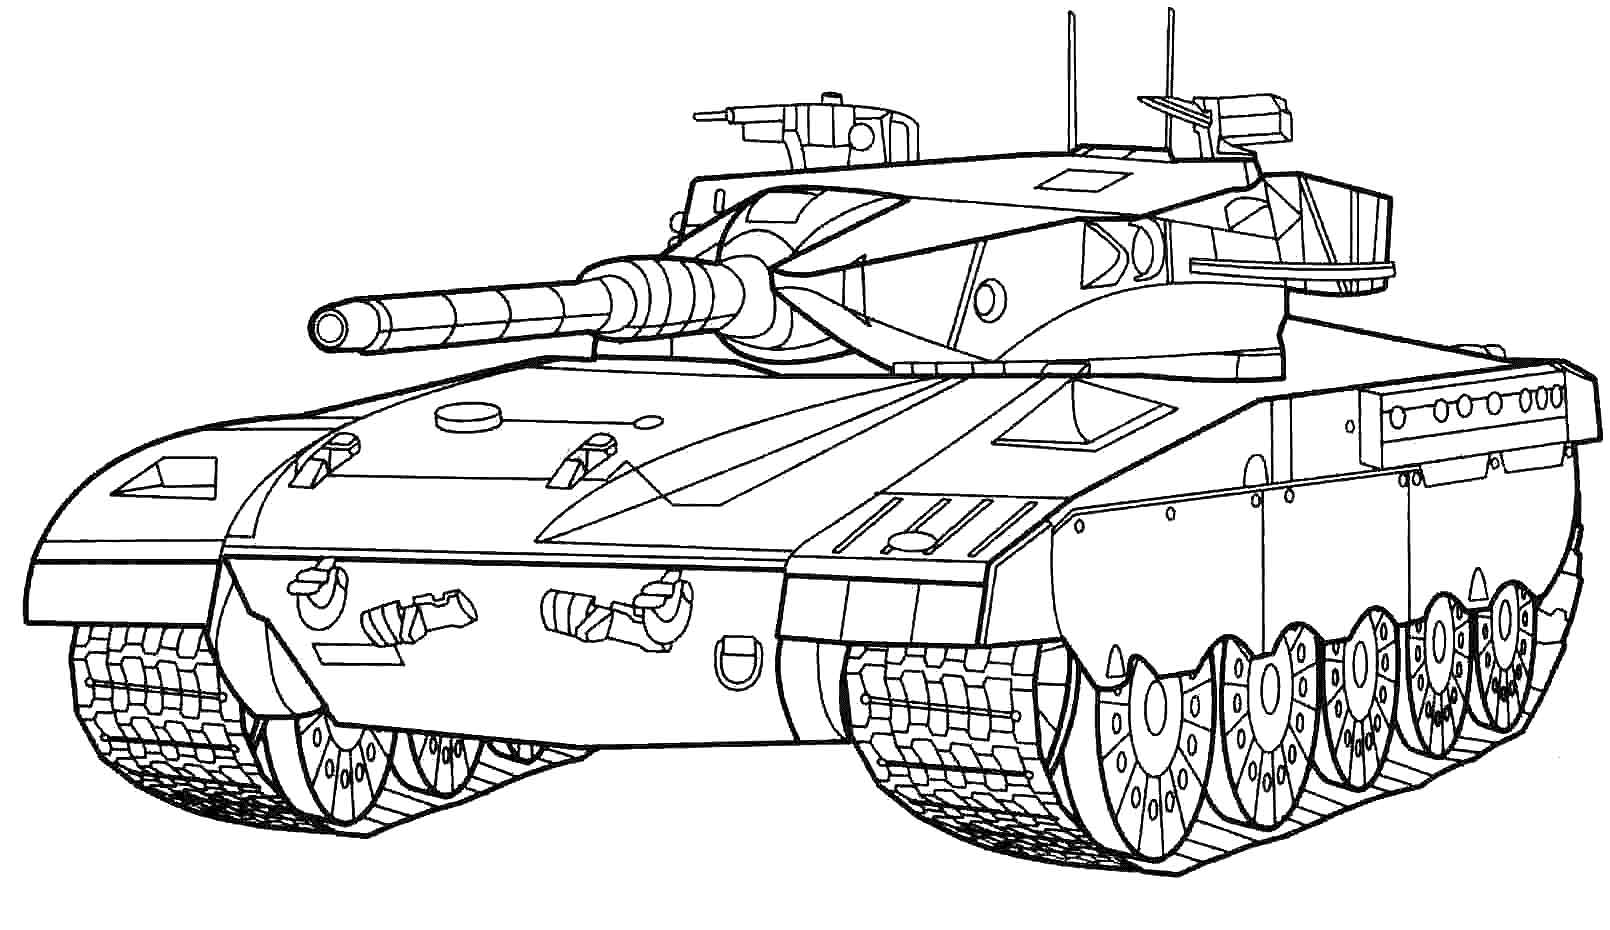 army tank coloring pictures army tanks coloring pages download and print for free pictures army coloring tank